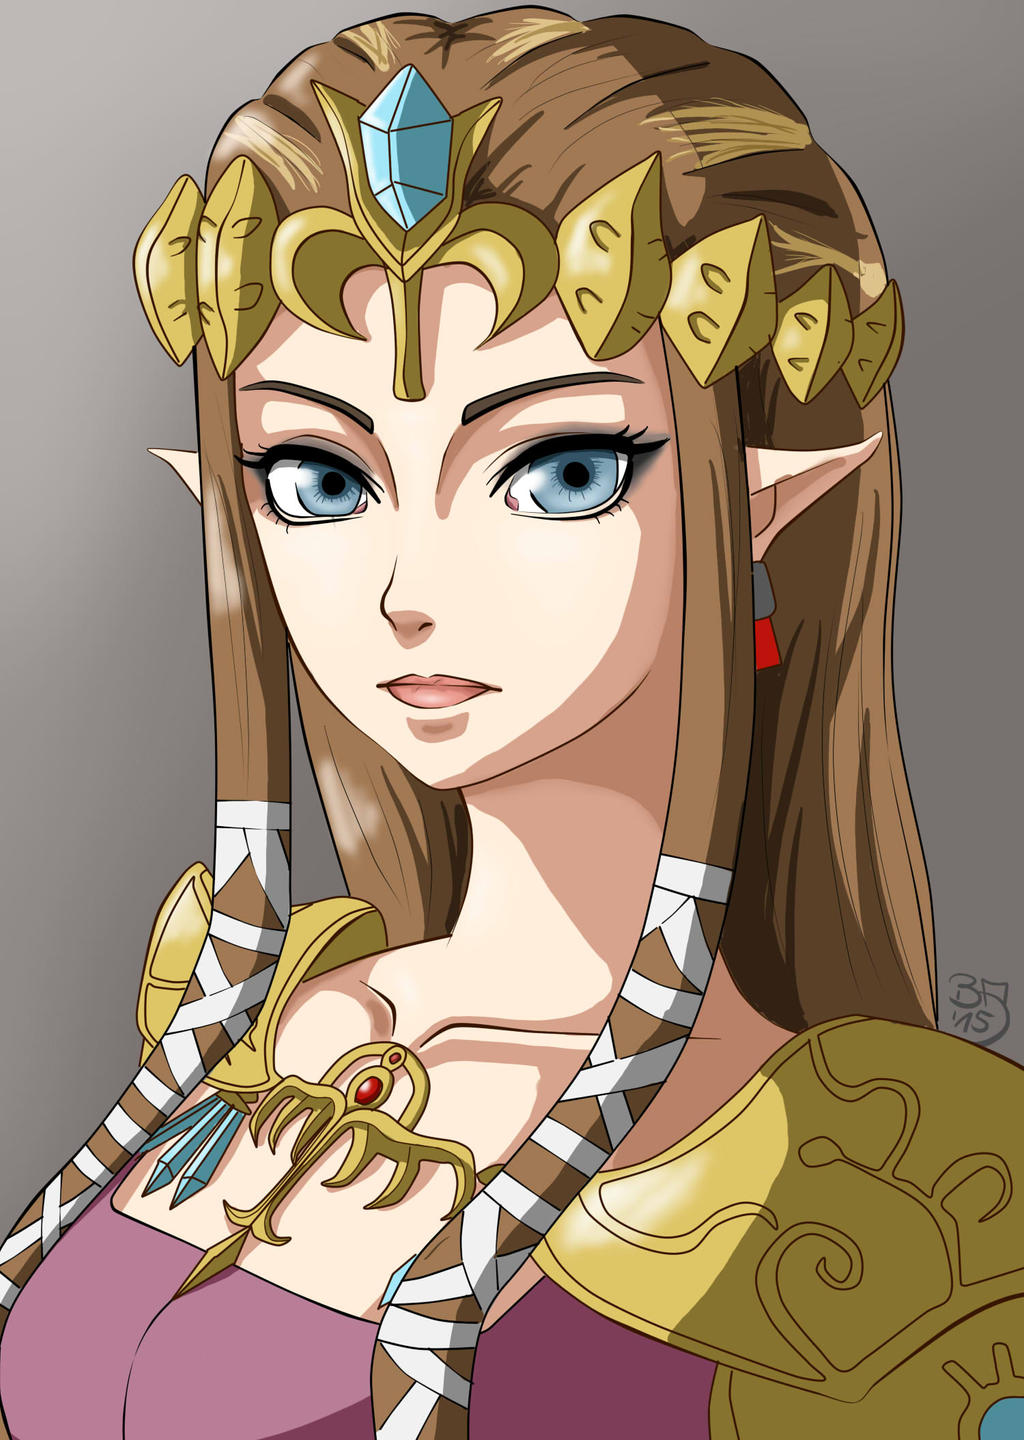 princess zelda by bakaarts on deviantart